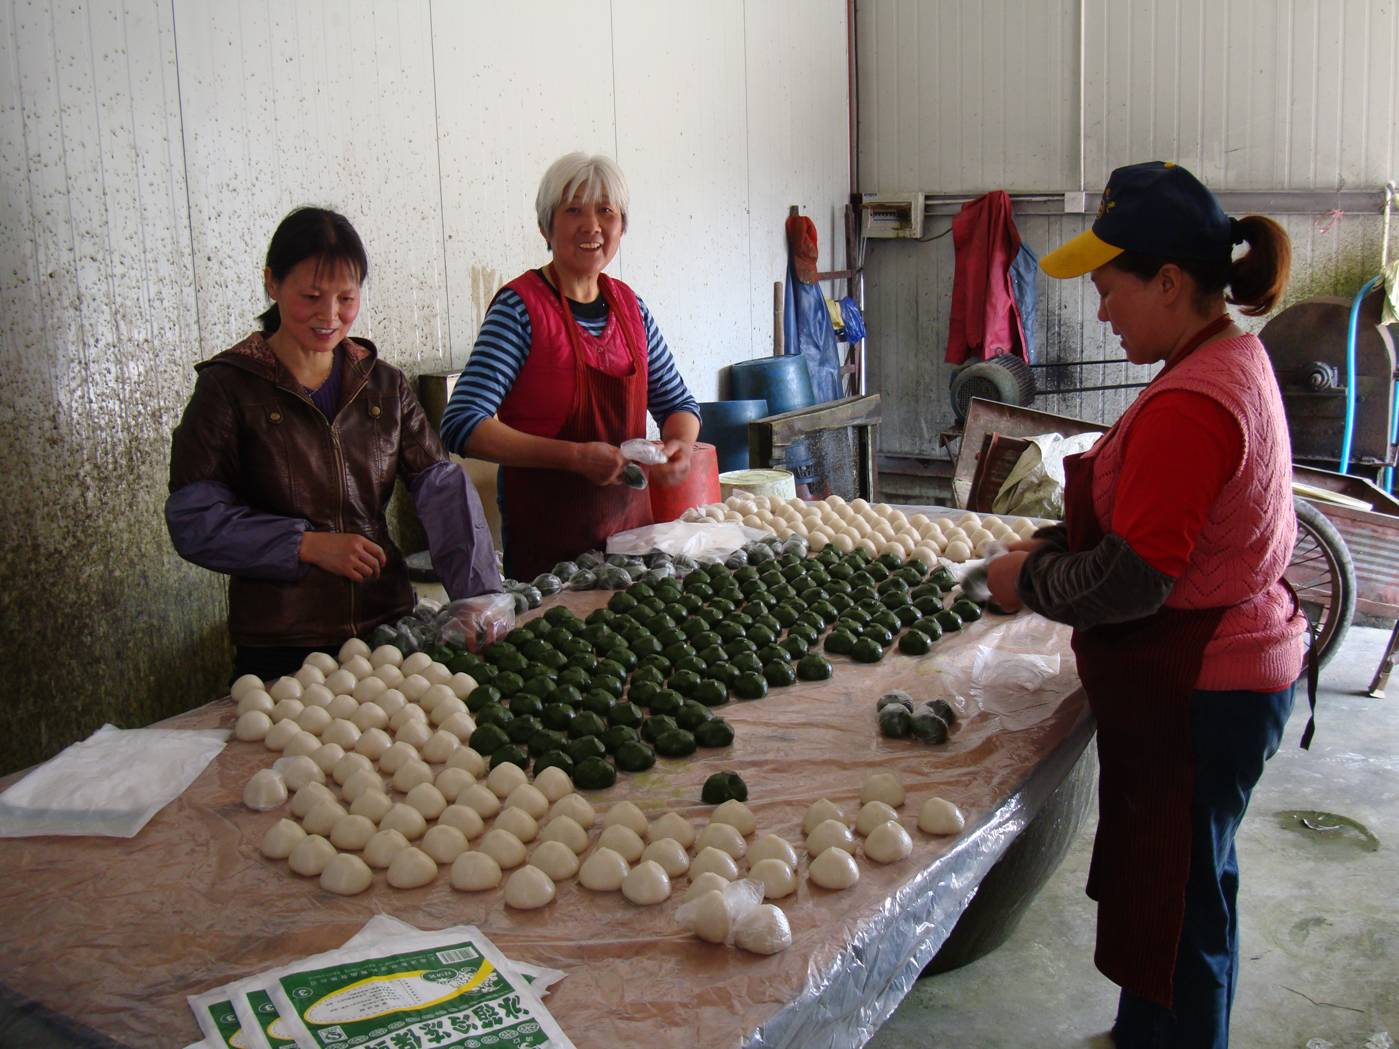 Picture:  The gang at work in the packing shed, readying the tuanzi for market.  Yang Shan, Wuxi, China